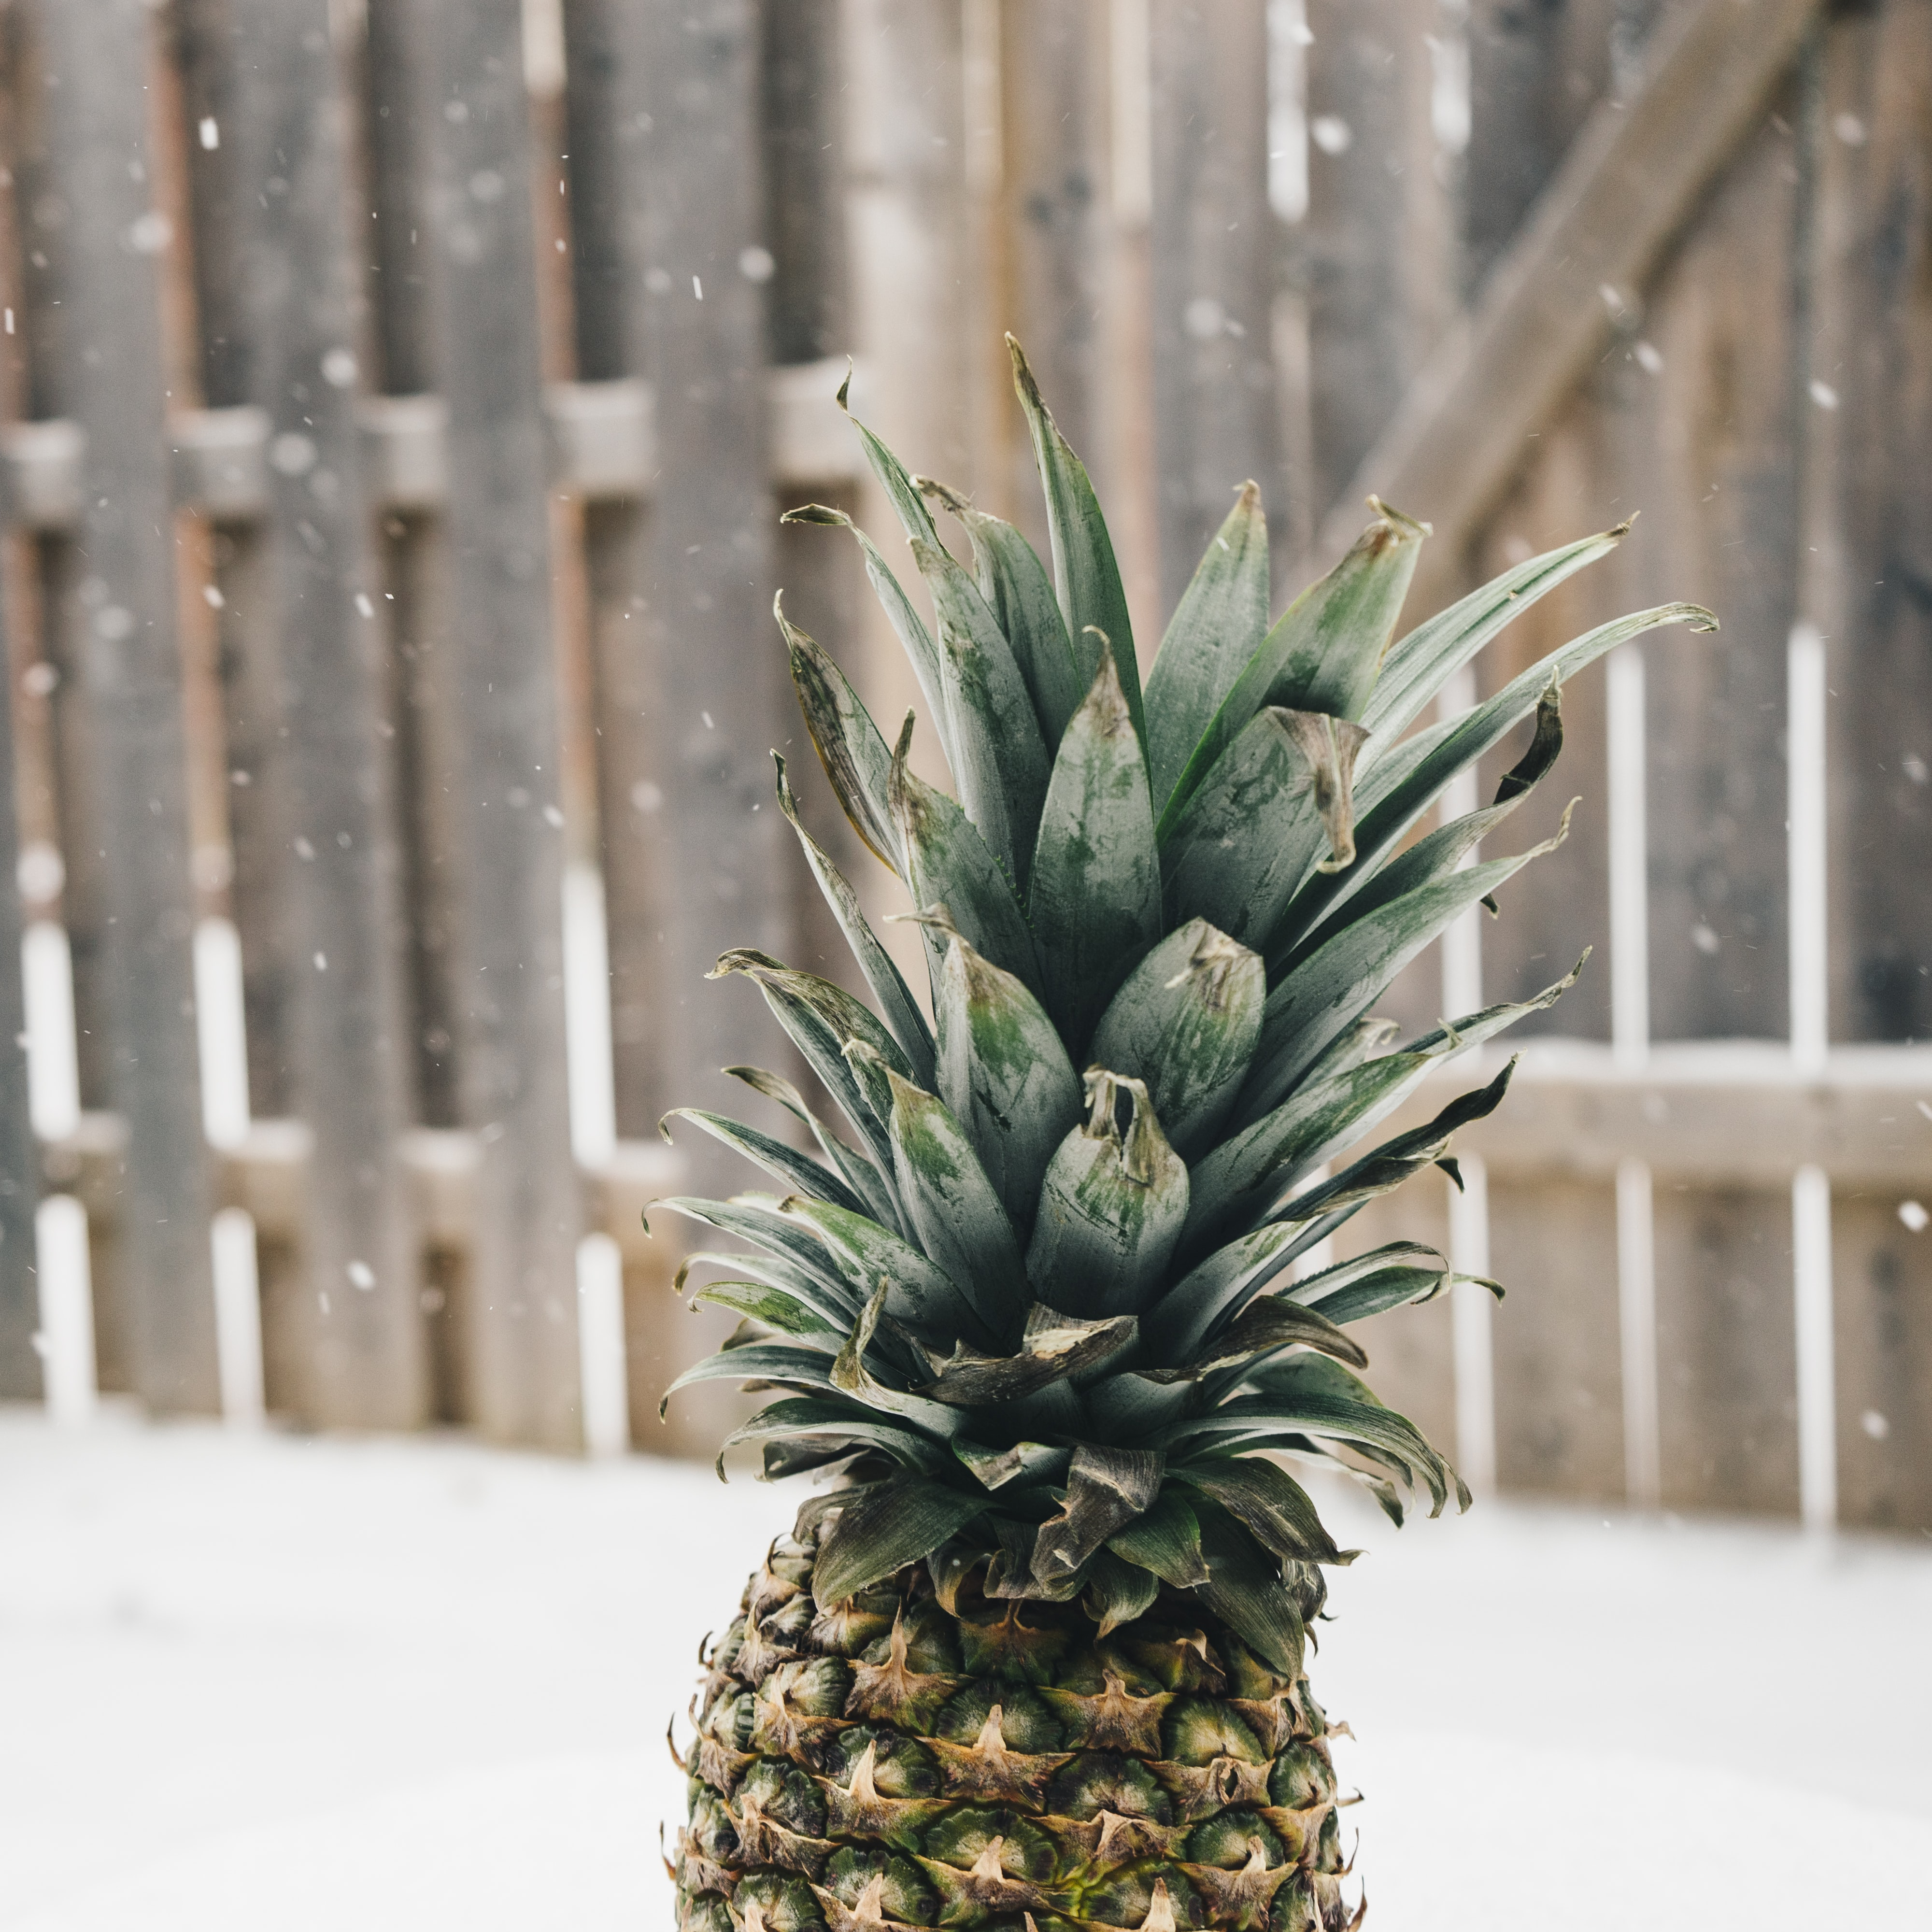 A pineapple on top of snow.